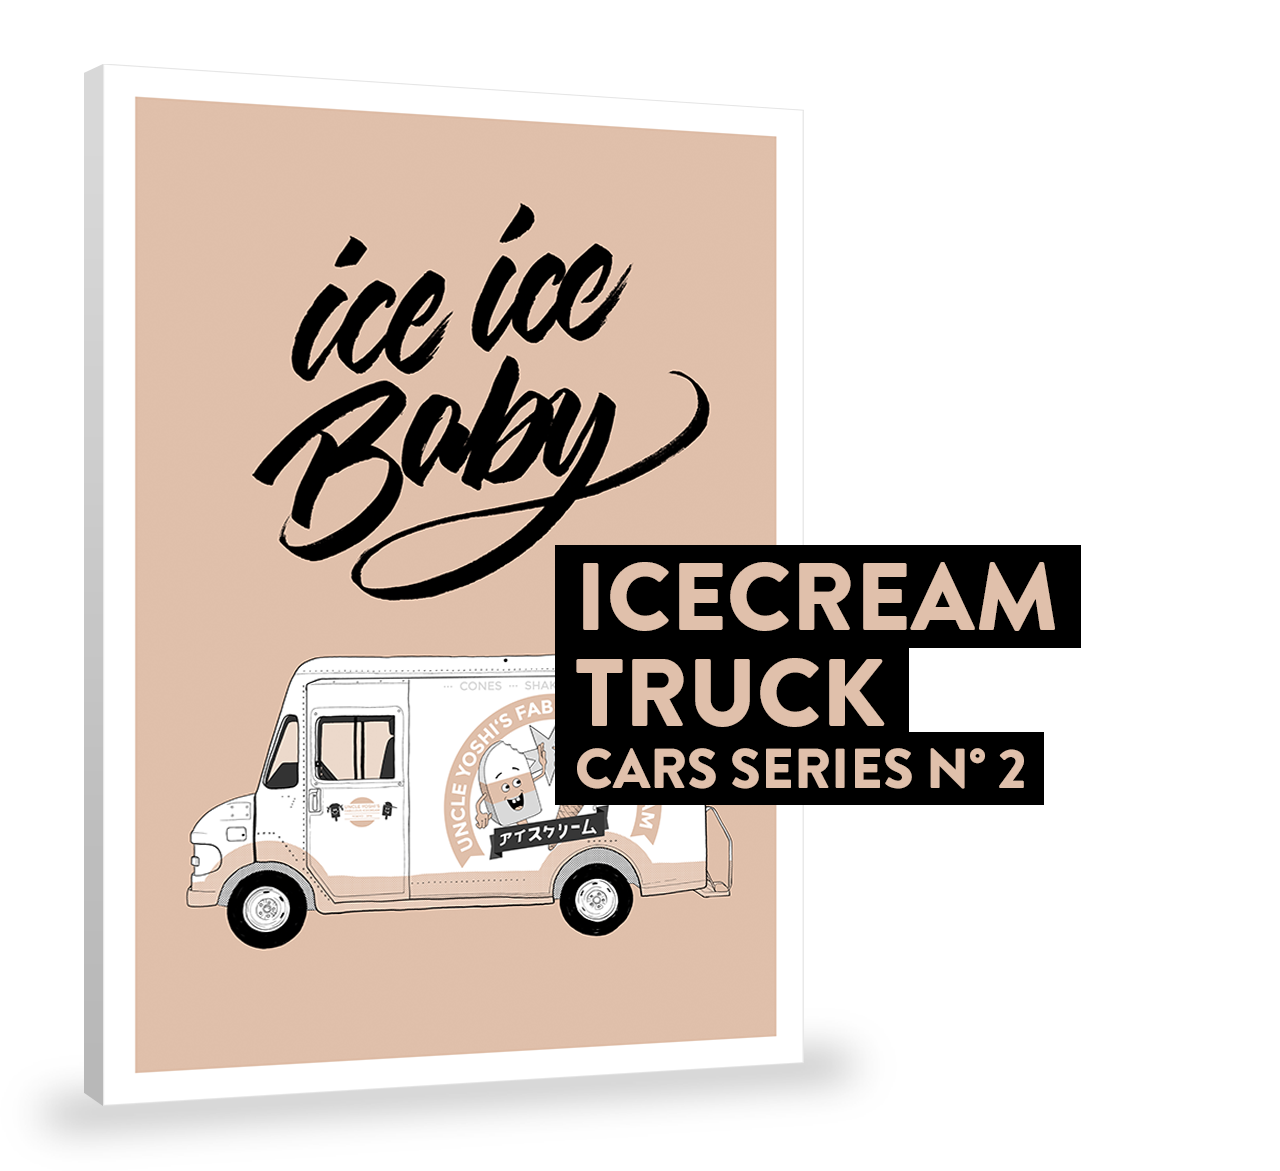 ICECREAM TRUCK (CARS SERIES N°2)